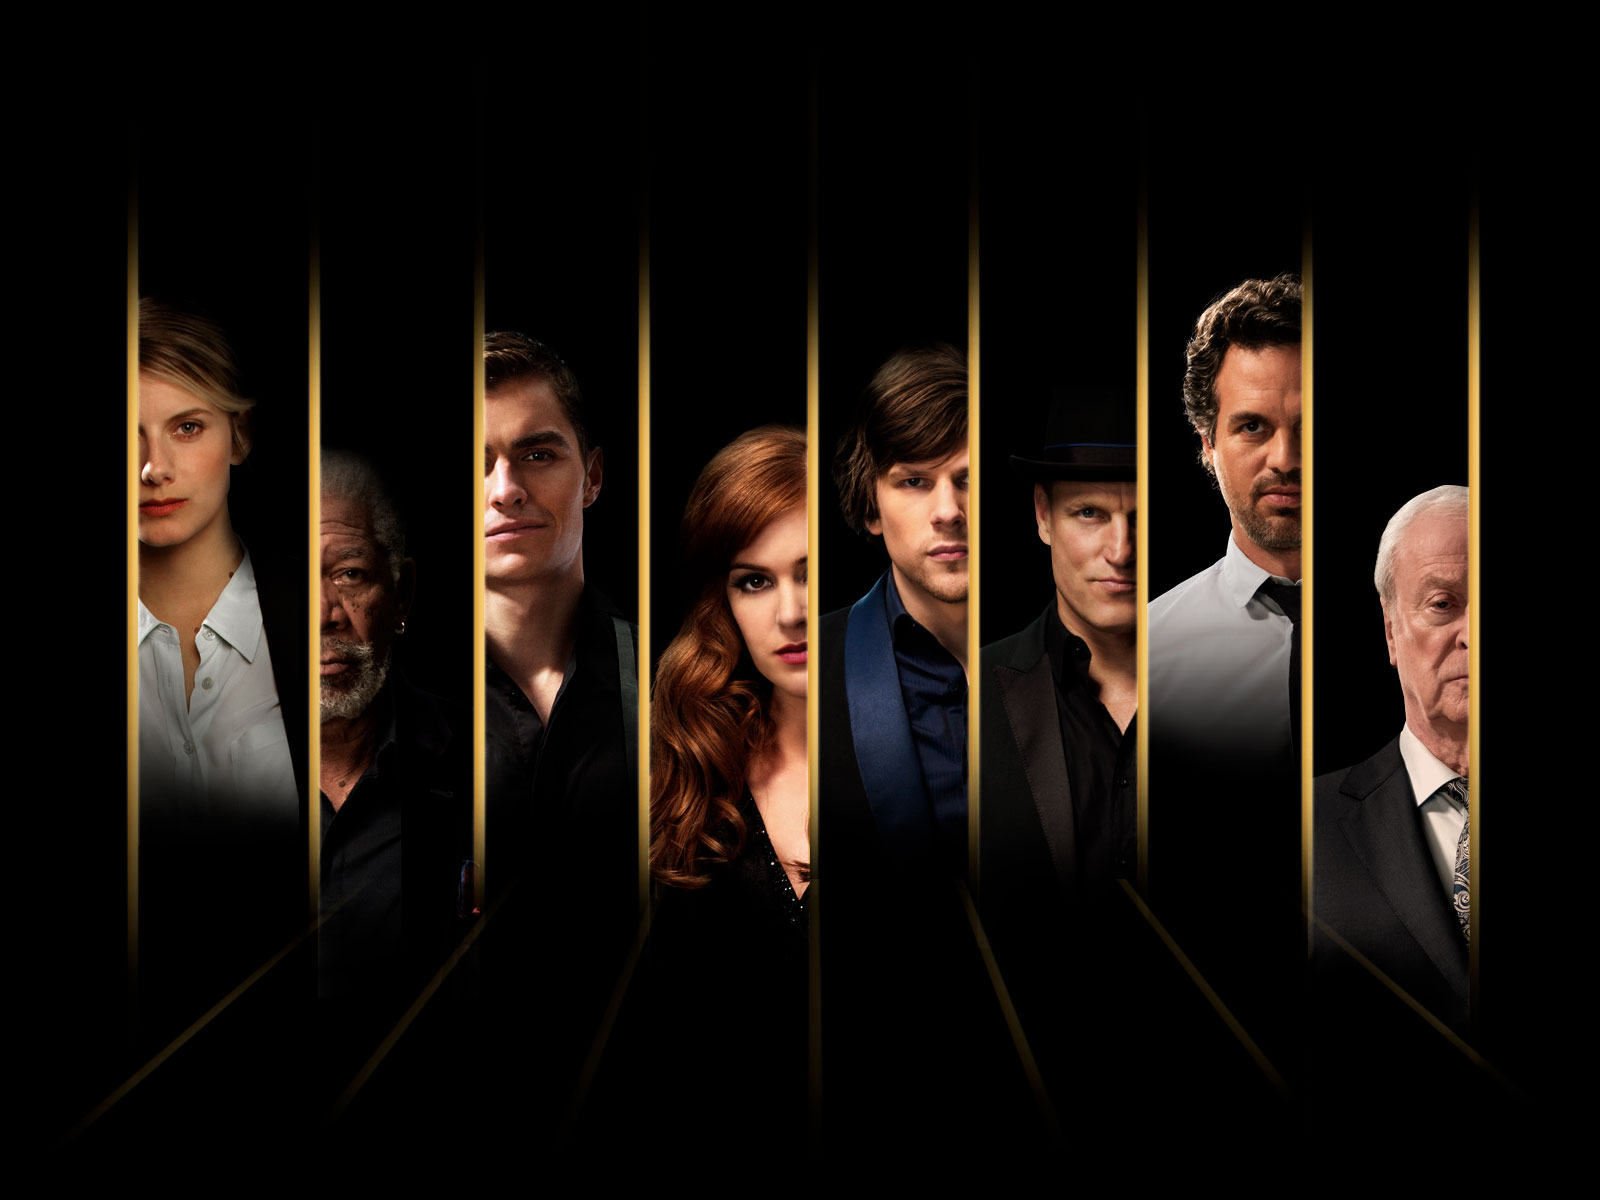 5 hd now you see me movie wallpapers Film hd me